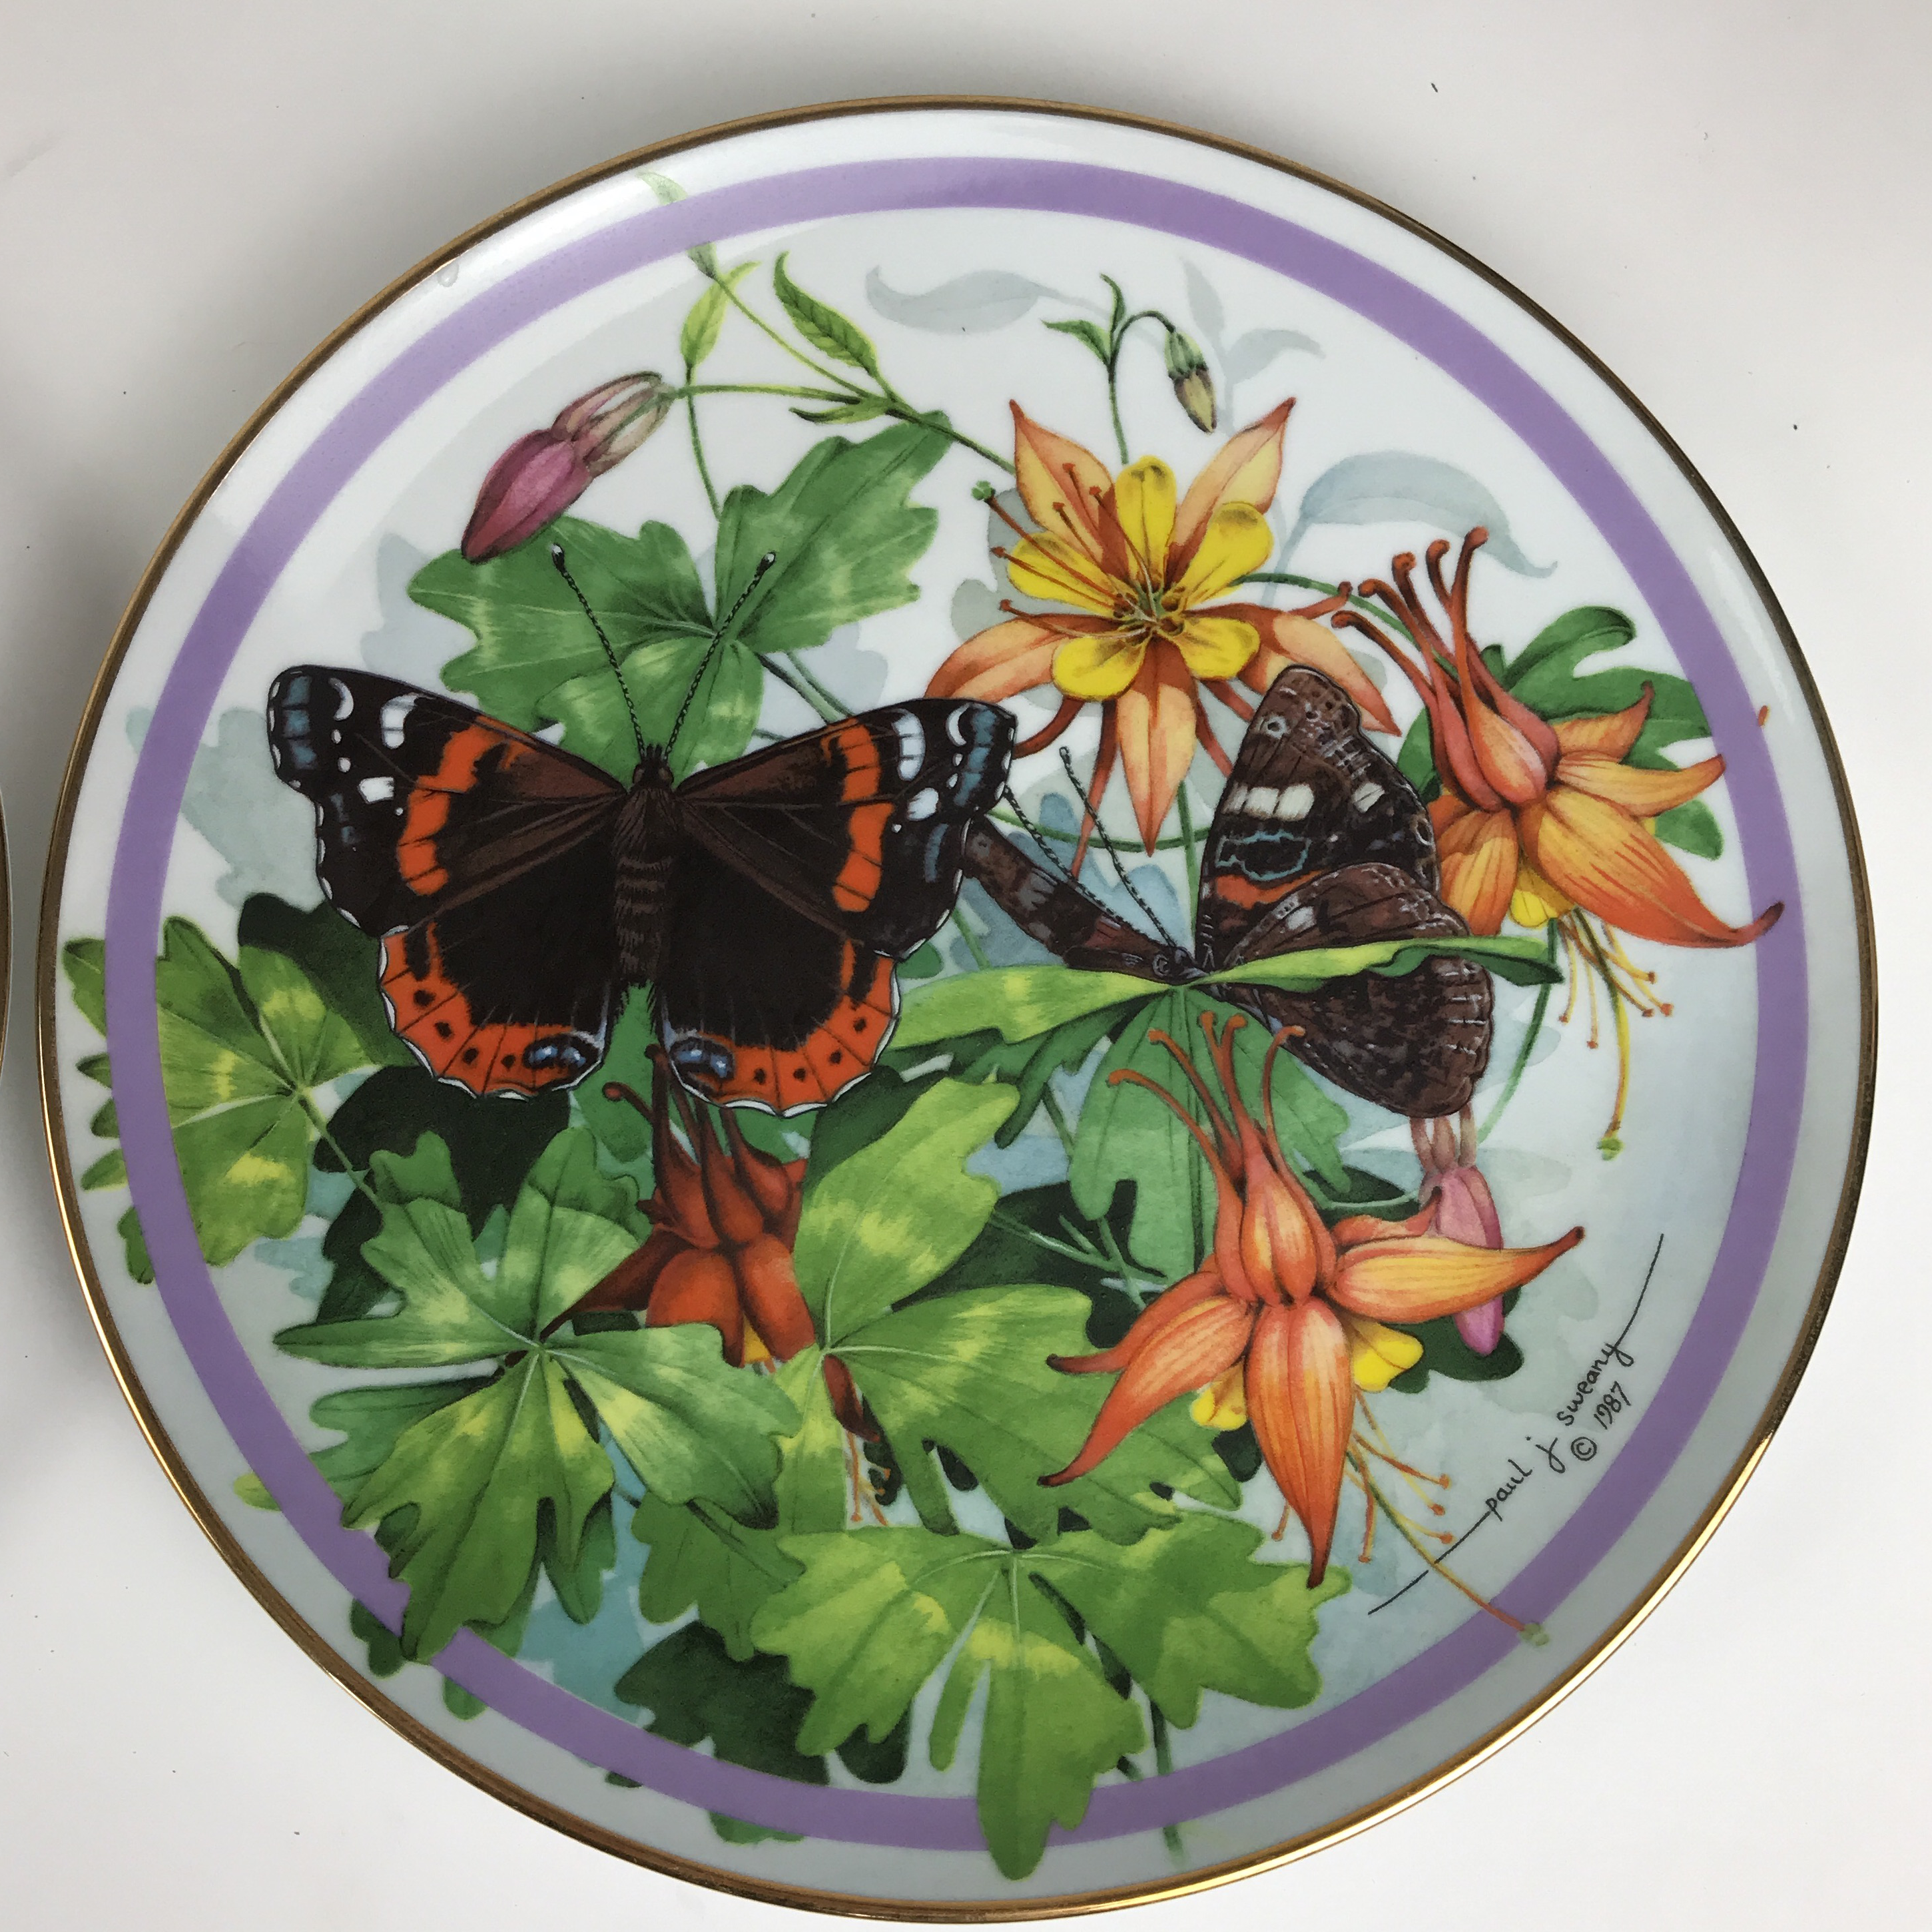 Butterfly Garden Plate Set Of 8 By Paul J Sweany Hamelton Collection 1986.  I Bought